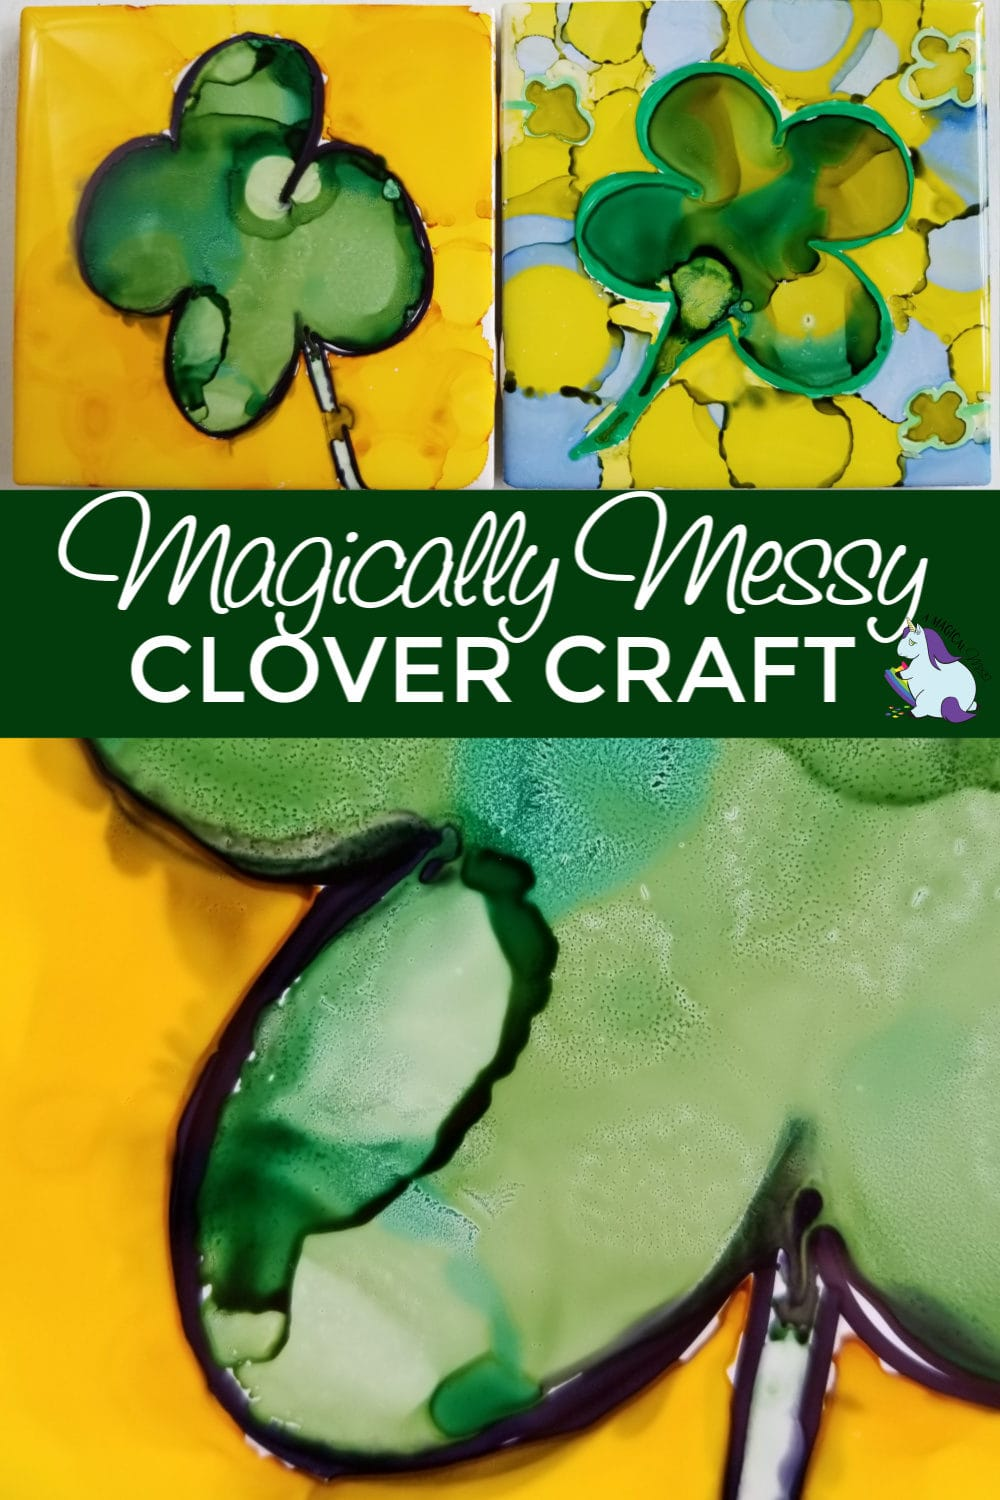 Magically messy clover craft